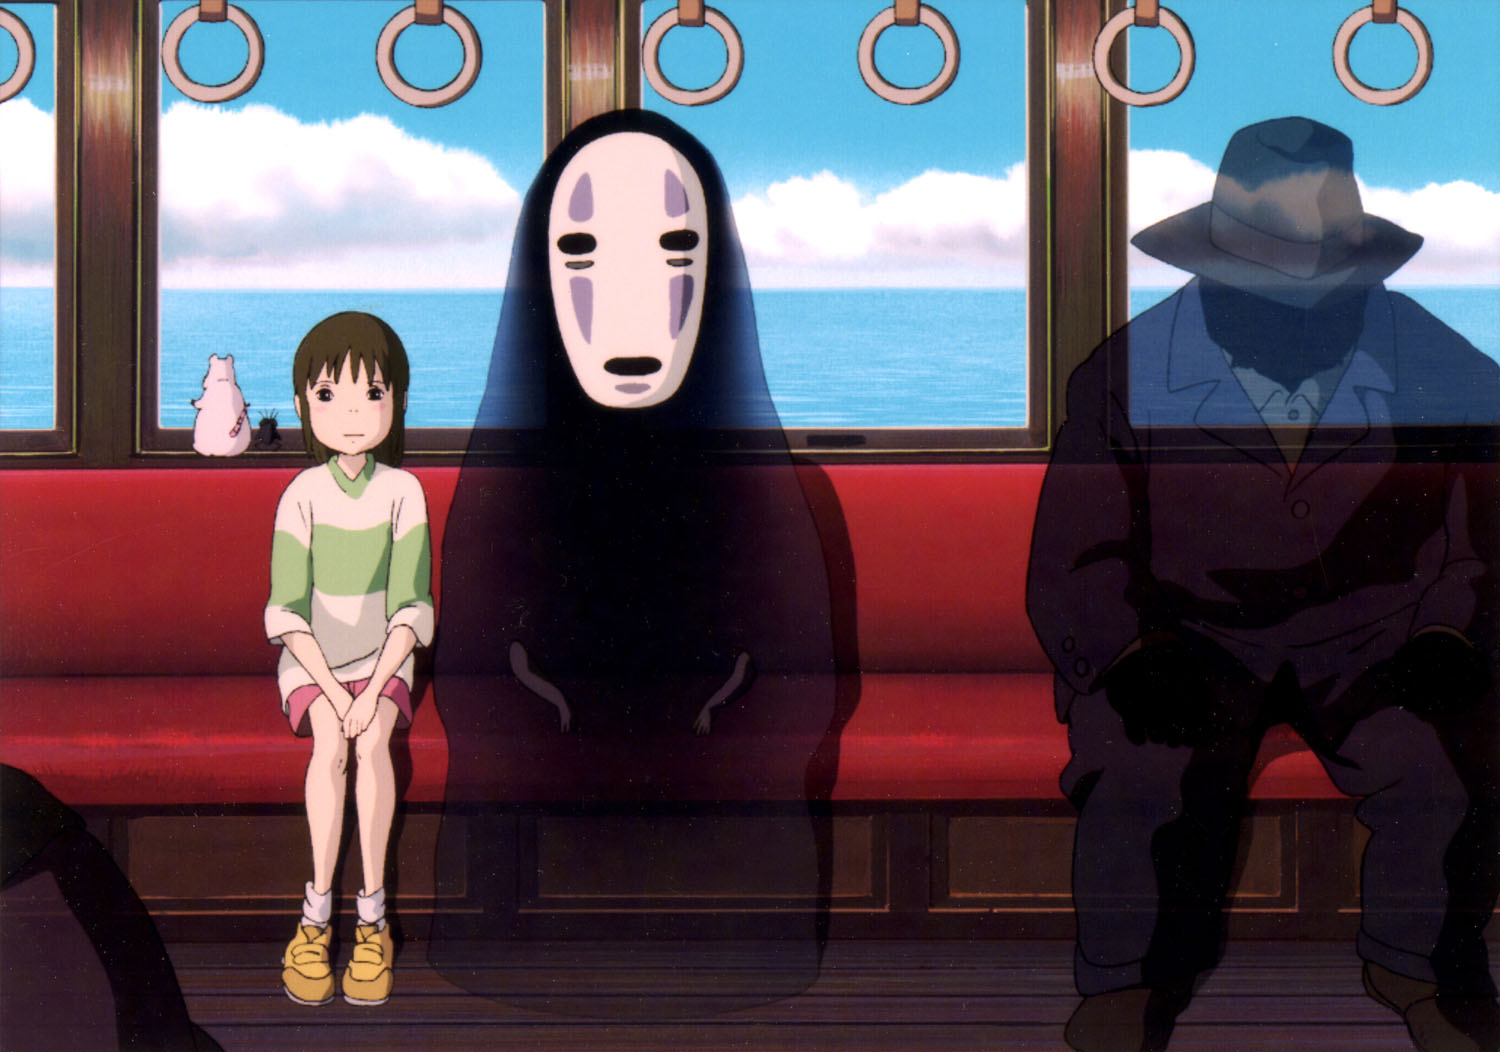 GKIDS brings 'Spirited Away' to U.S. cinemas for two days only